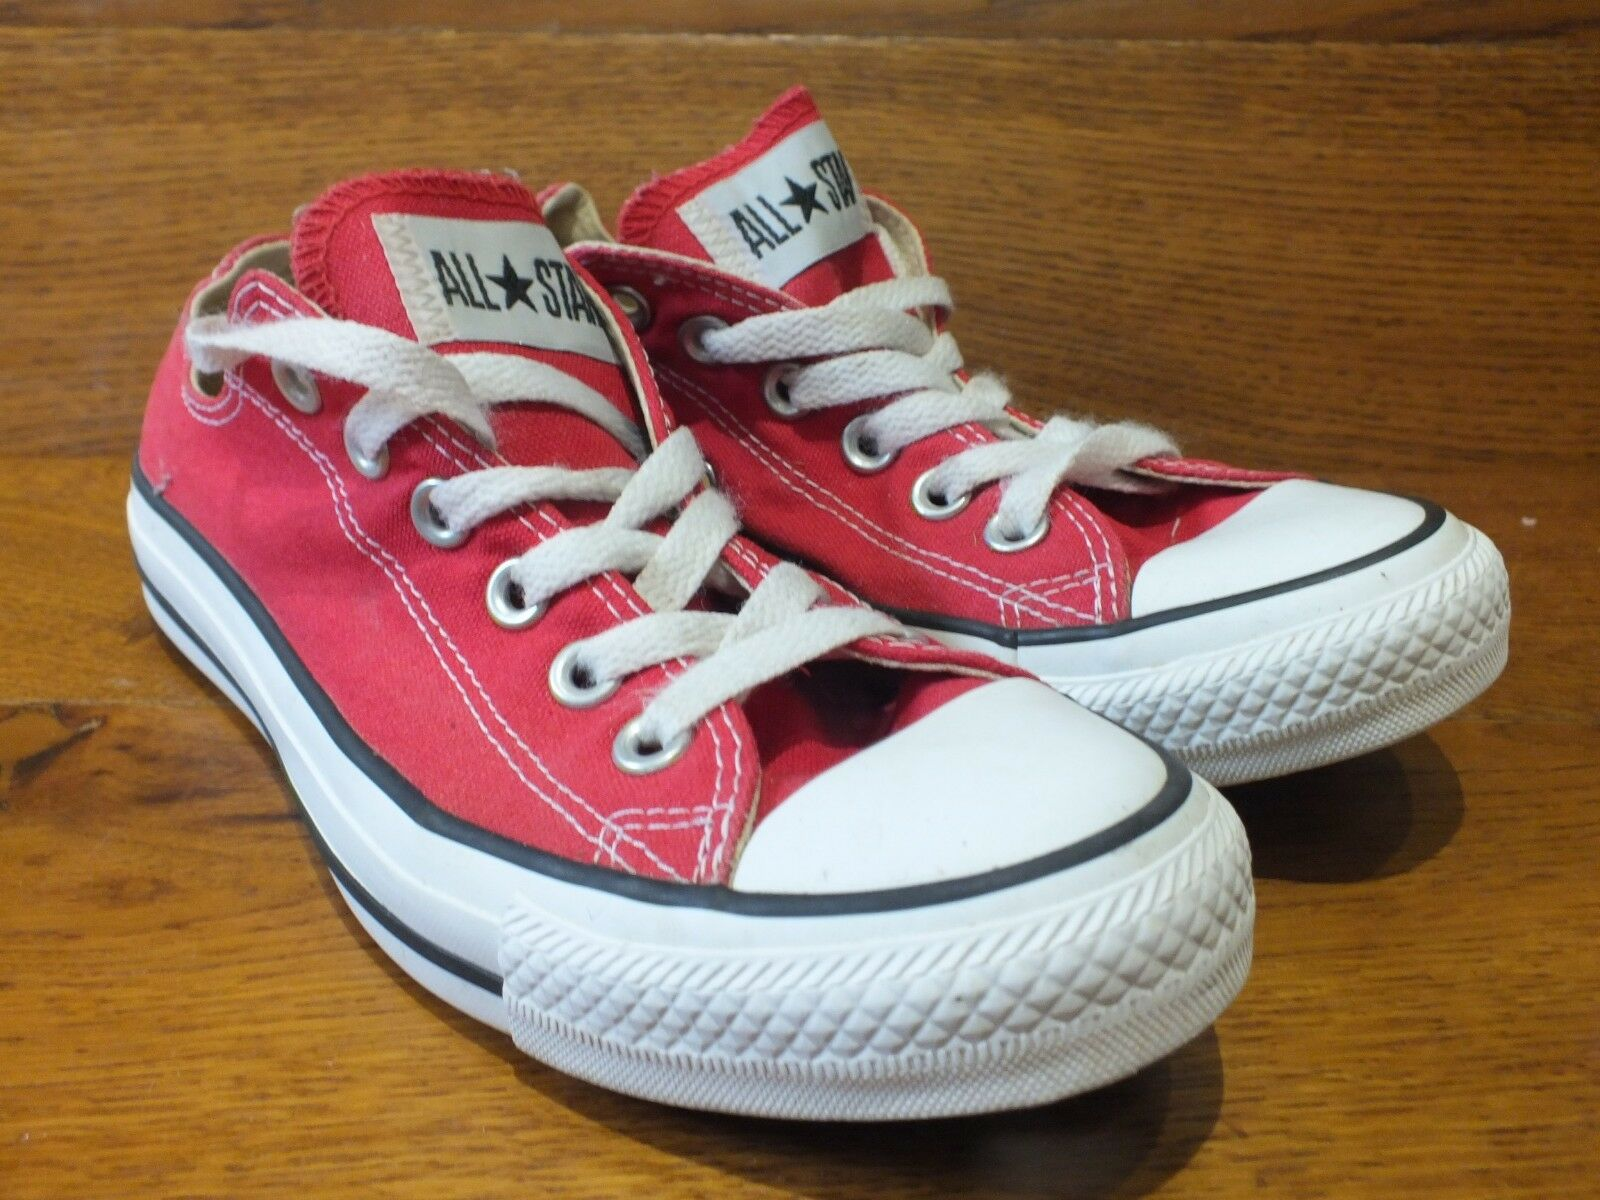 Converse CT All Star UK 5  EU 37.5 Red Canvas Casual Trainers